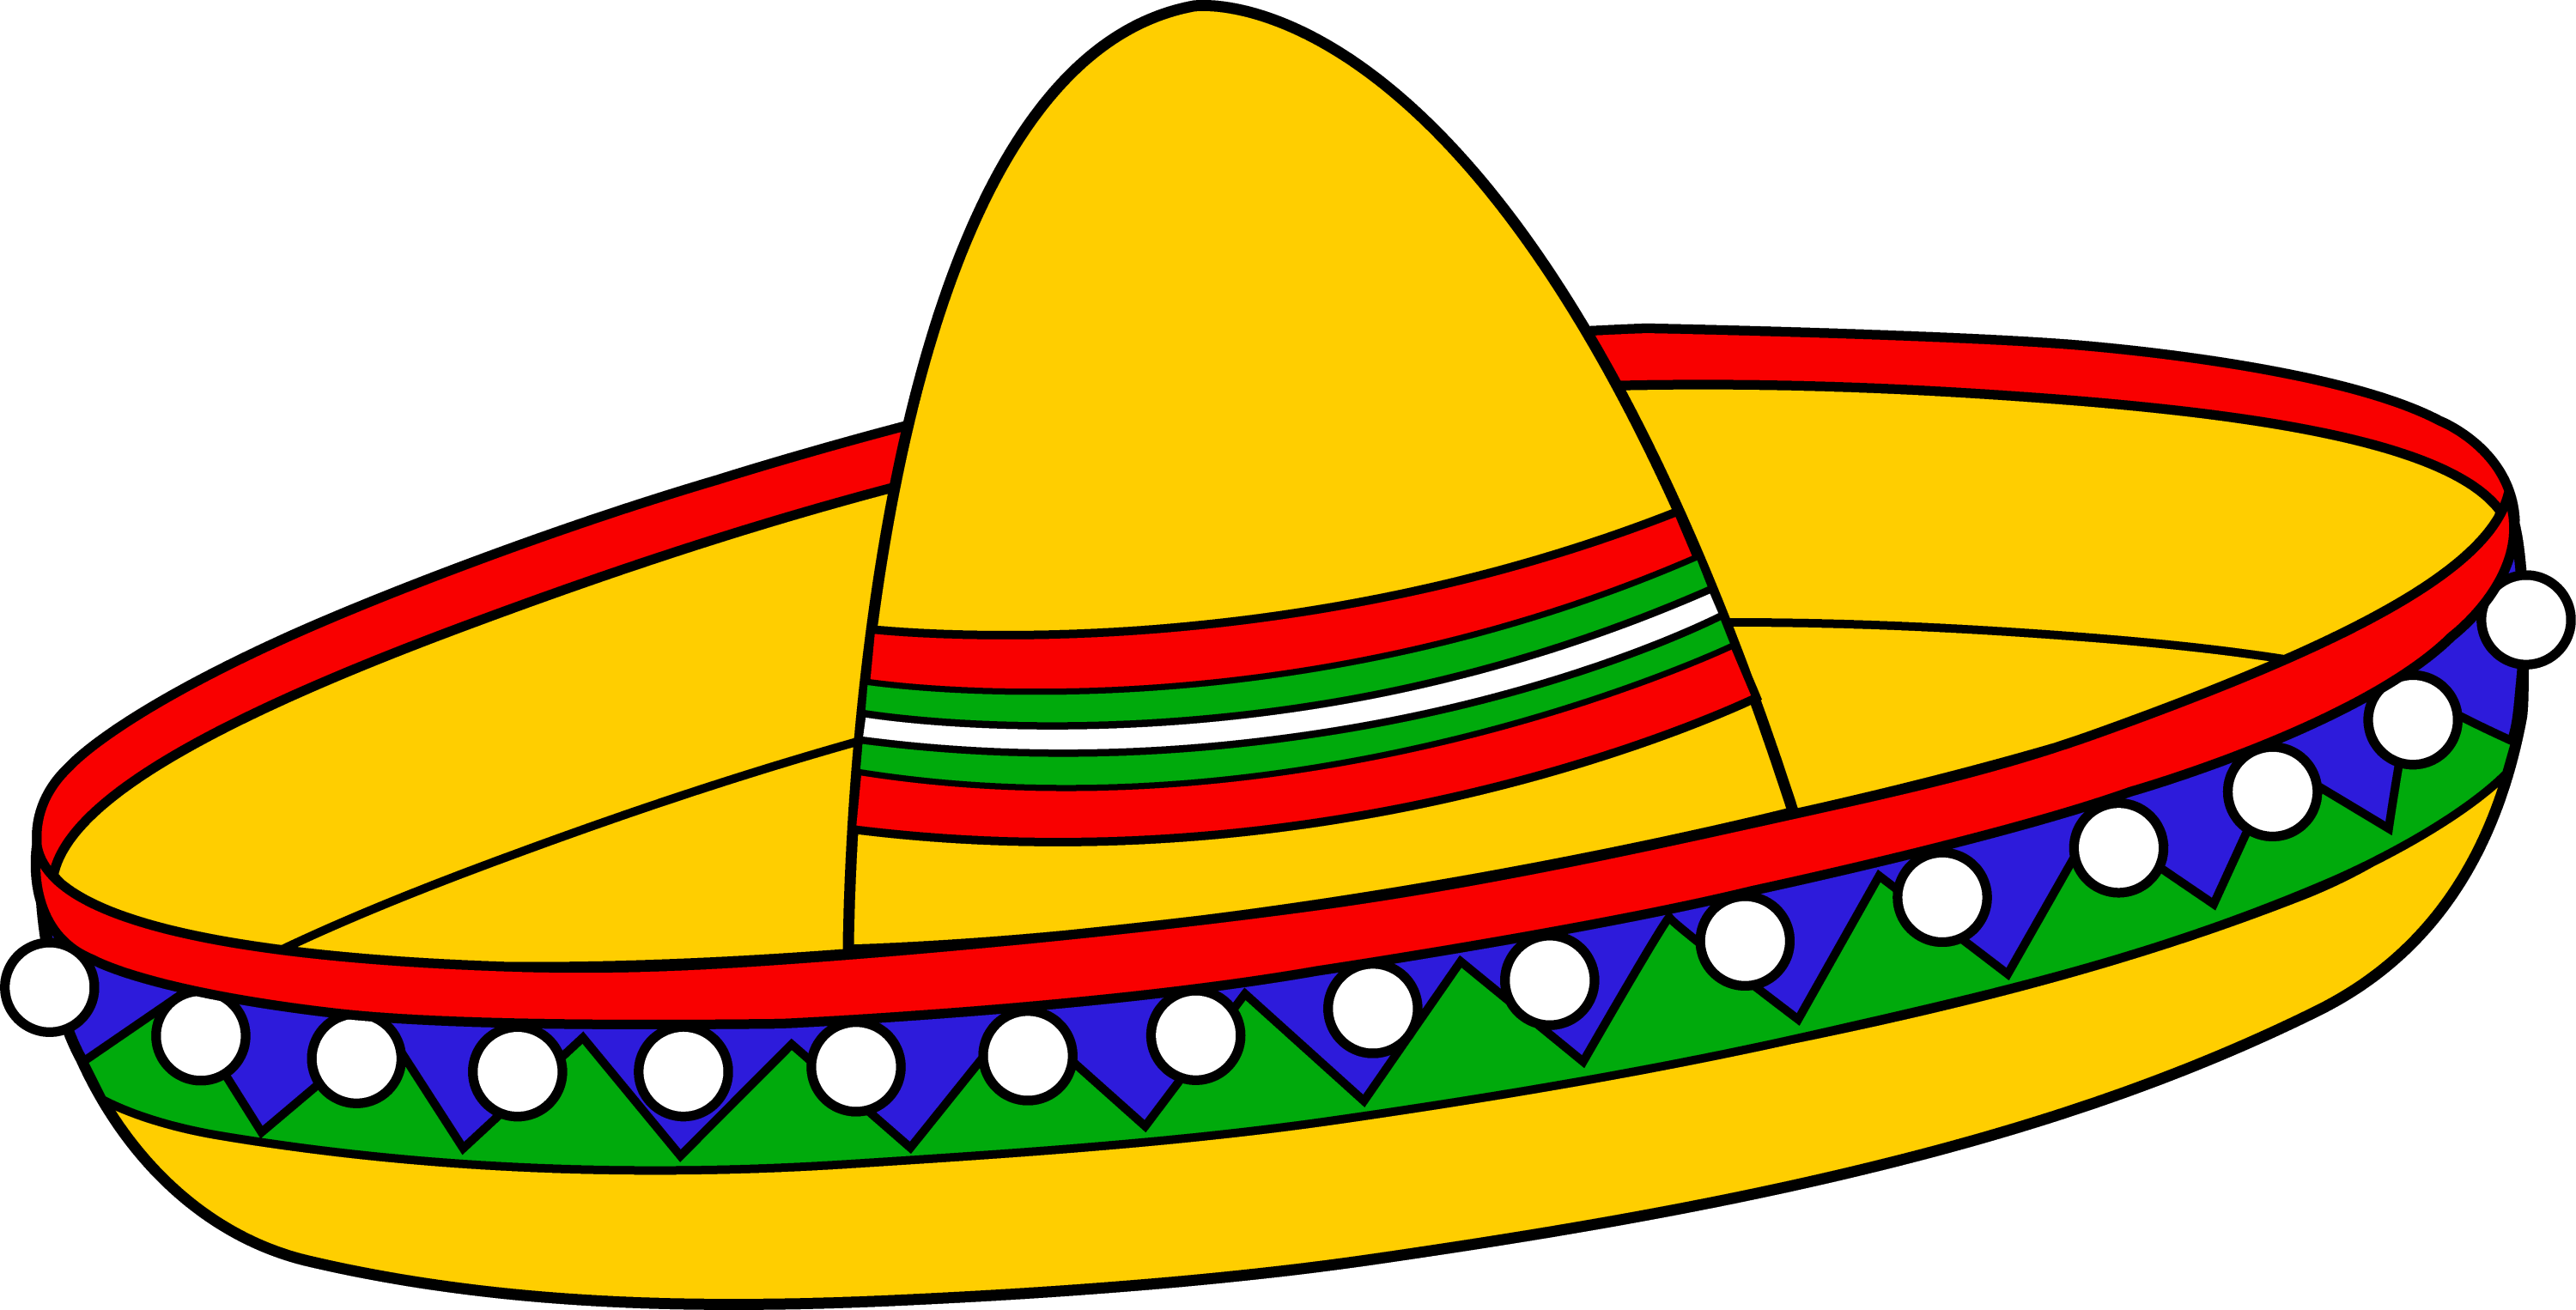 Colorful Mexican Sombrero Hat - Free Clip Art